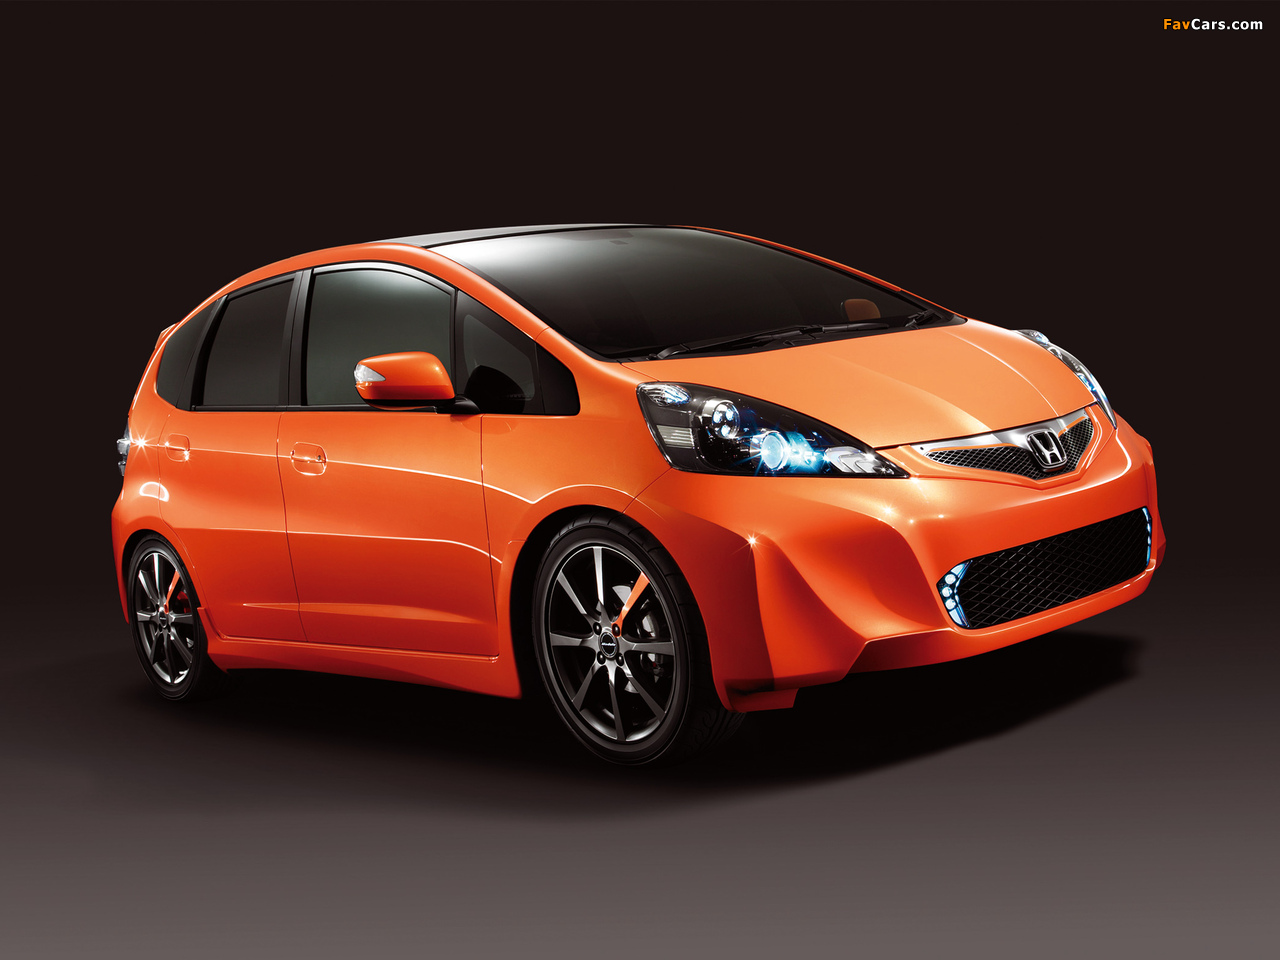 Modulo Sports Honda Fit RS Concept (GE) 2009 images (1280 x 960)